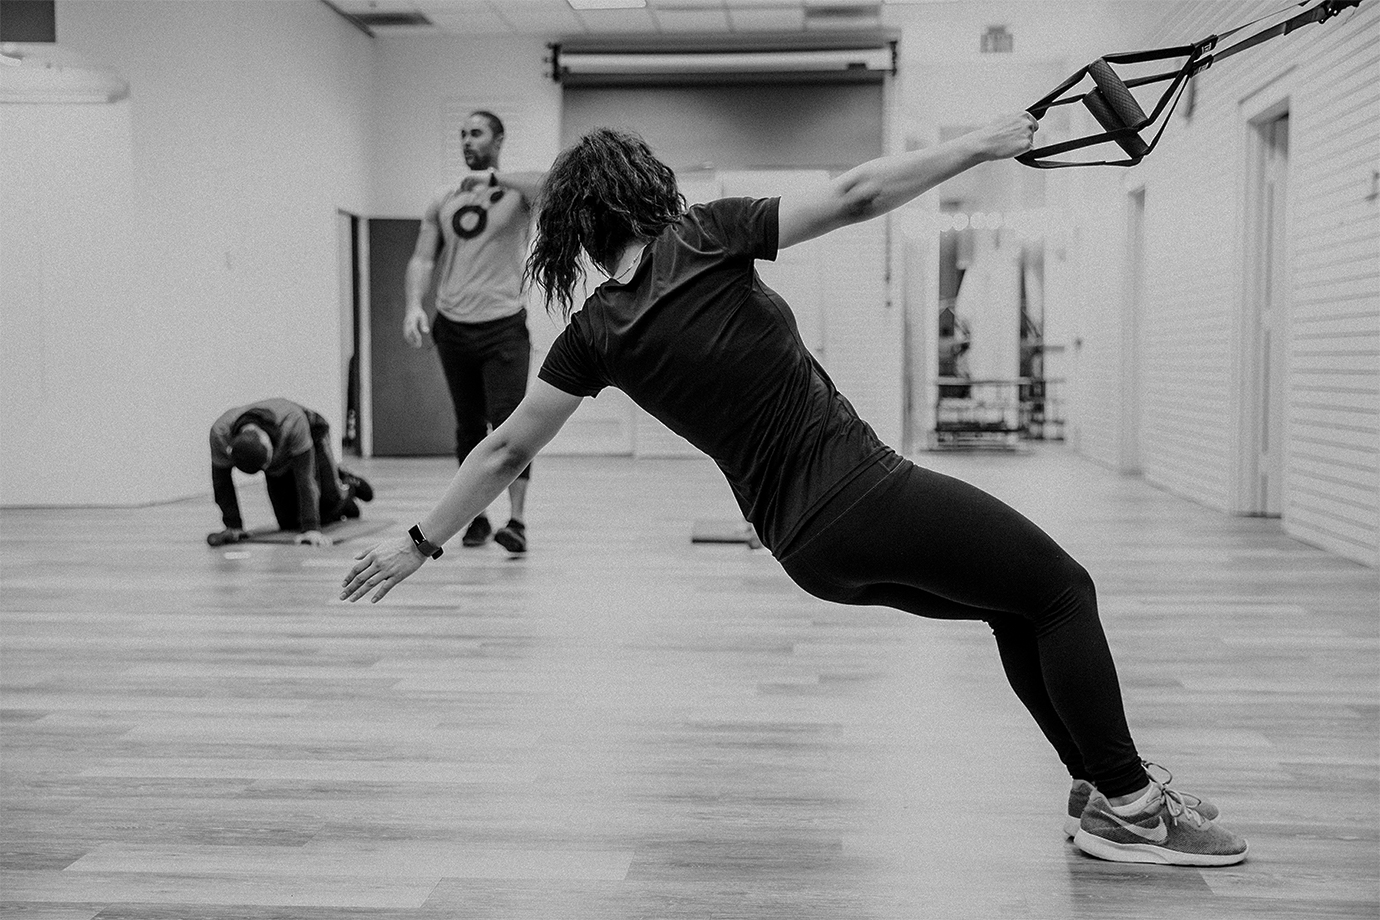 sweat - This high intensity interval training (HIIT) class is typically set up in a circuit format. We incorporate functional body weight exercises, medicine balls, jump ropes, TRX straps, a battle rope, and an agility ladder into the workout for an efficient full body training session.